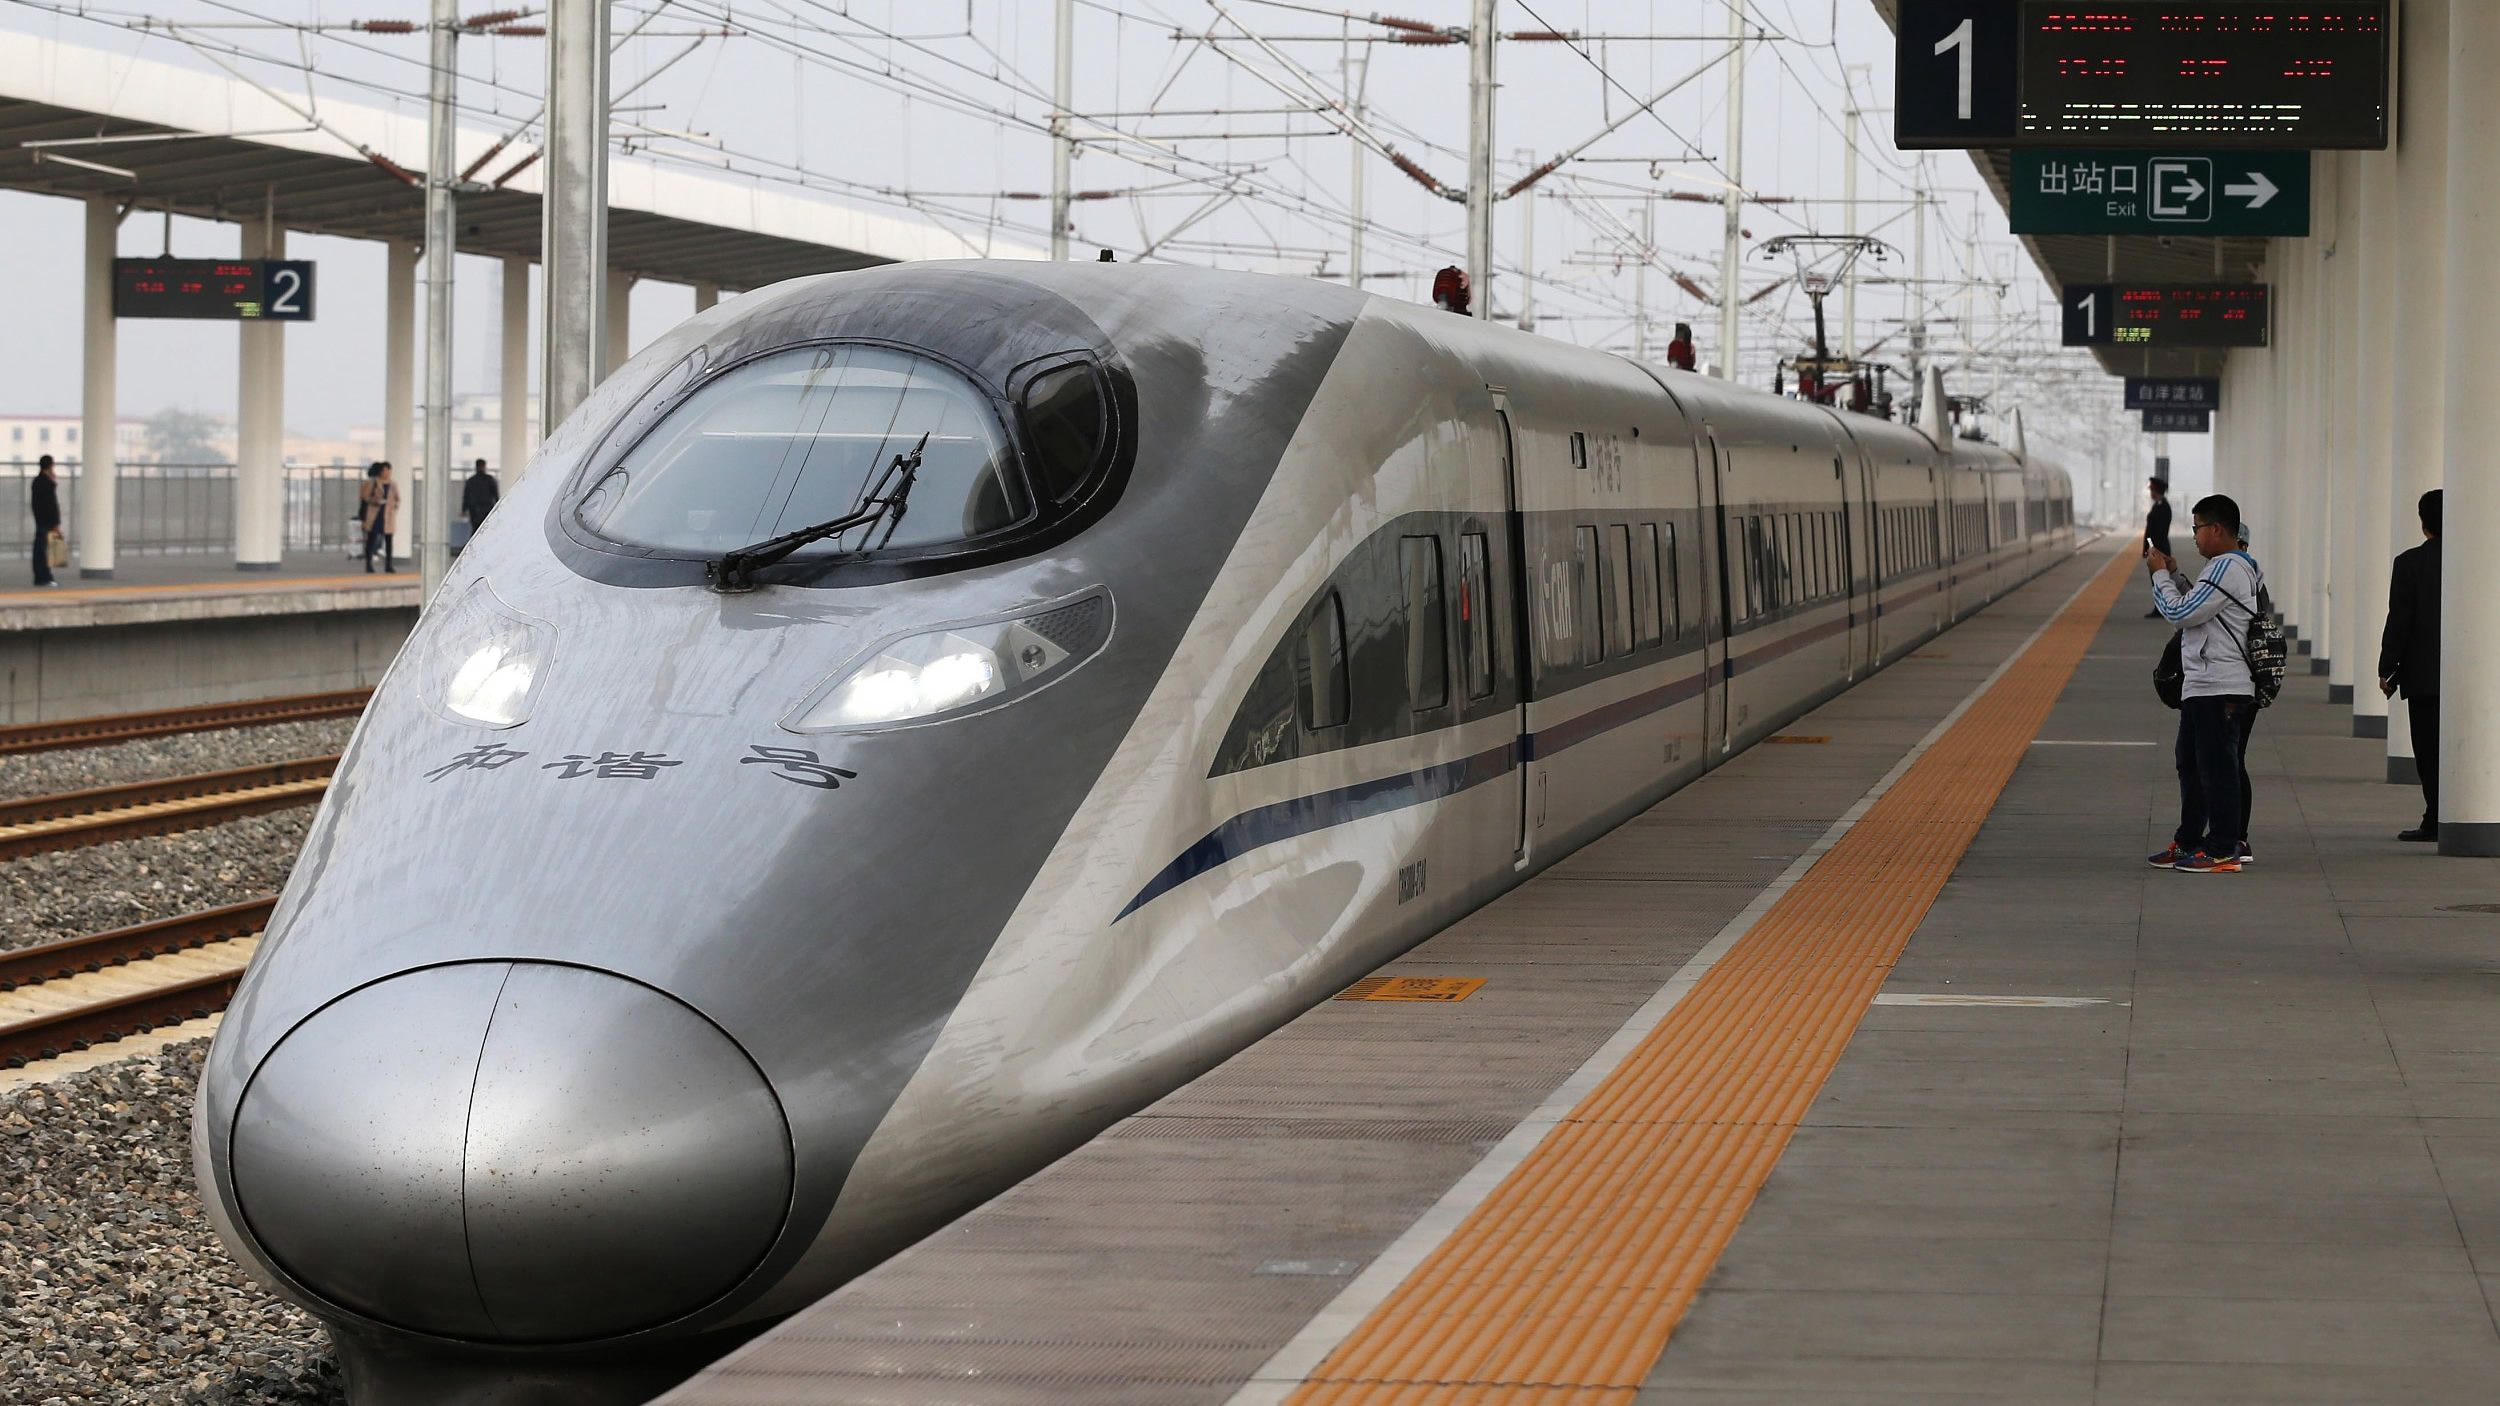 AI maintenance system helps high-speed train run safely